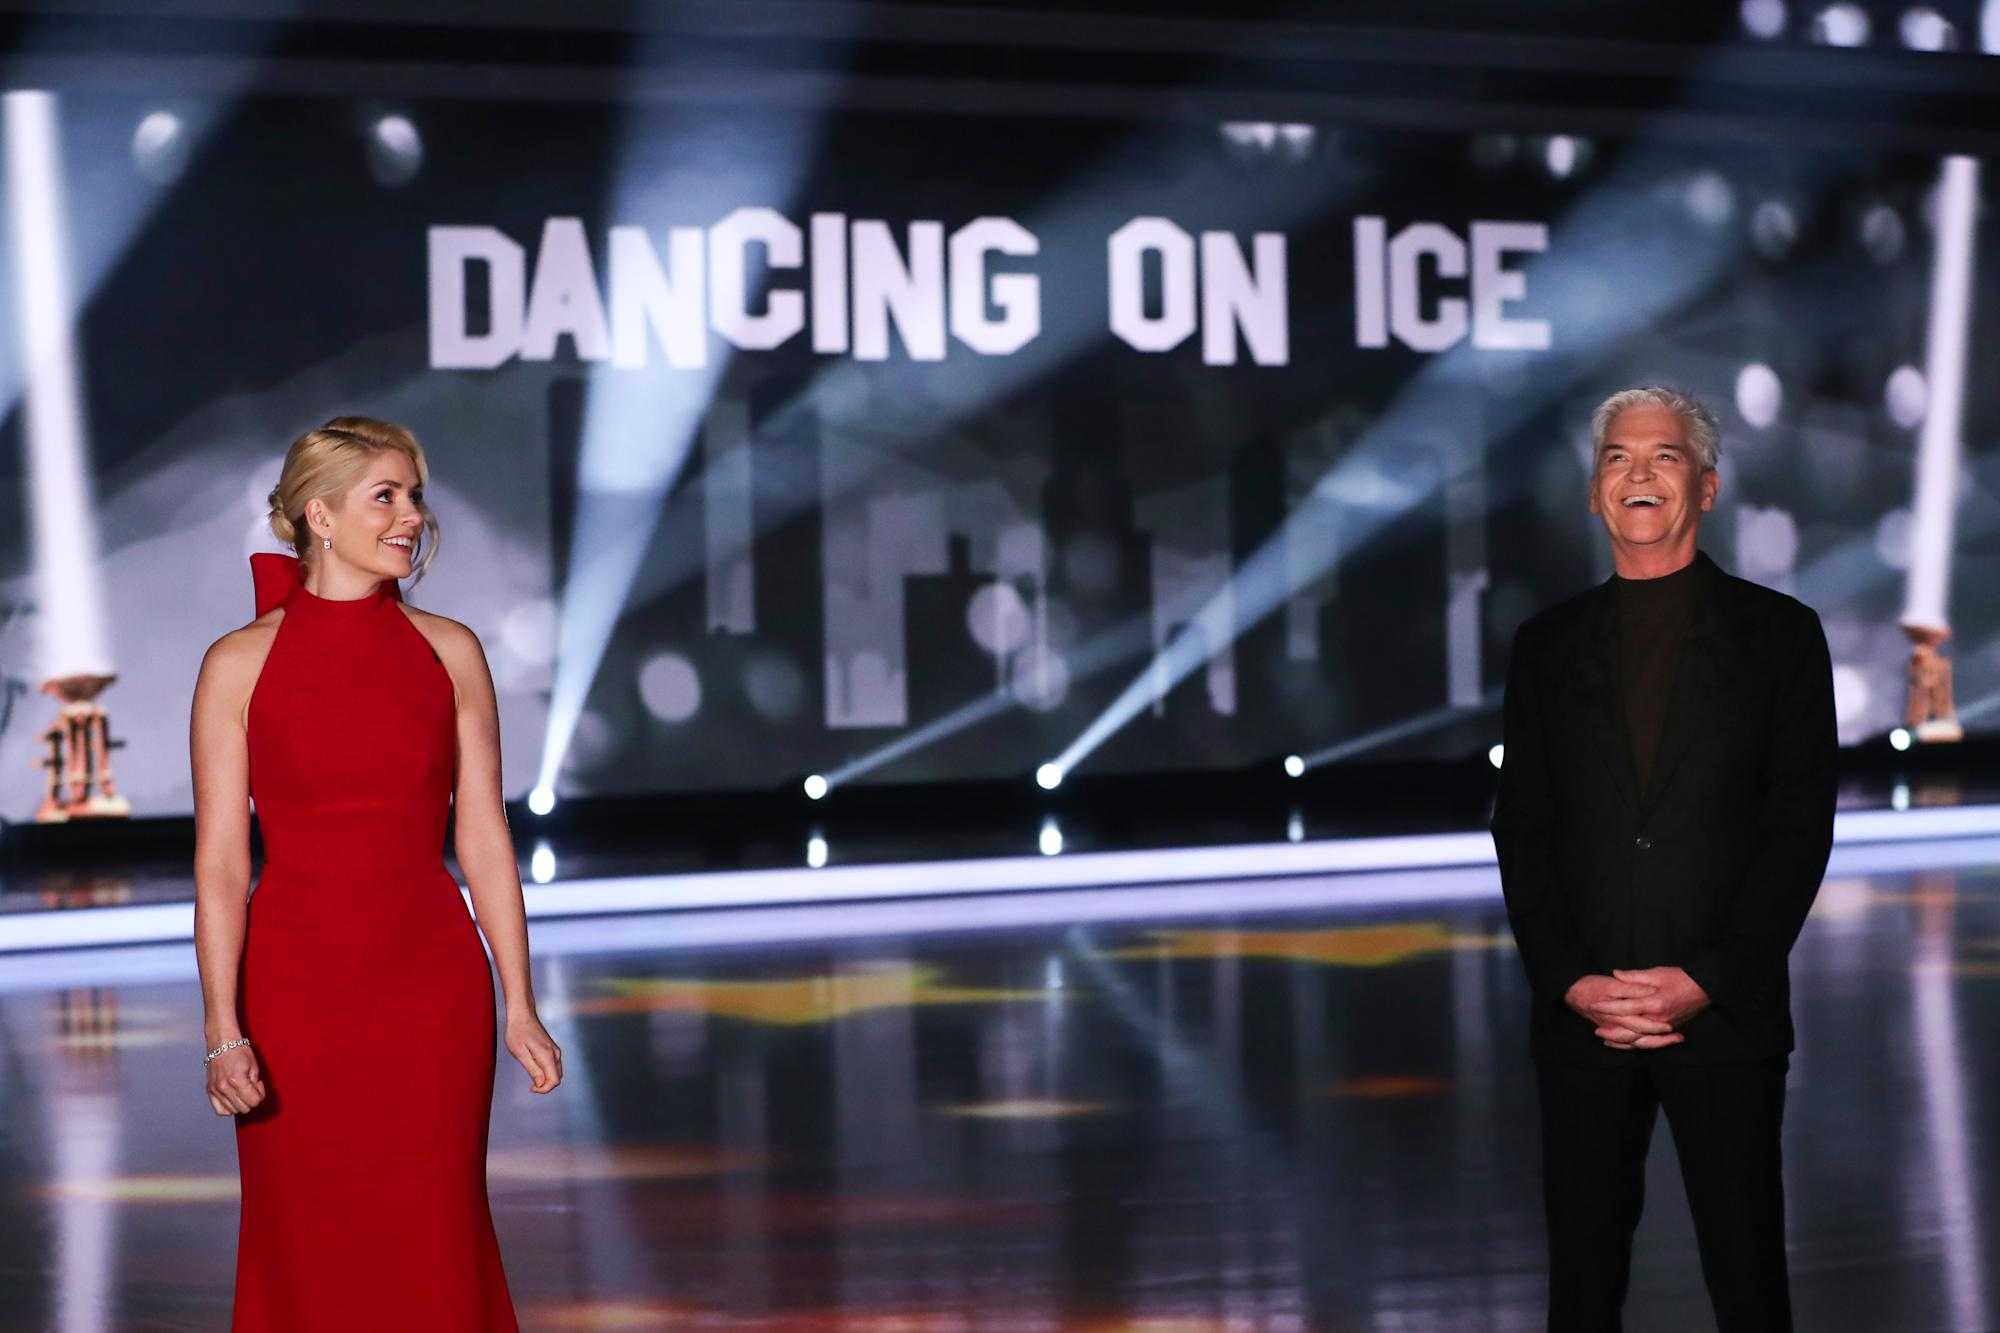 'Dancing On Ice': Who was voted out in movie week? Who is still left in the competition?